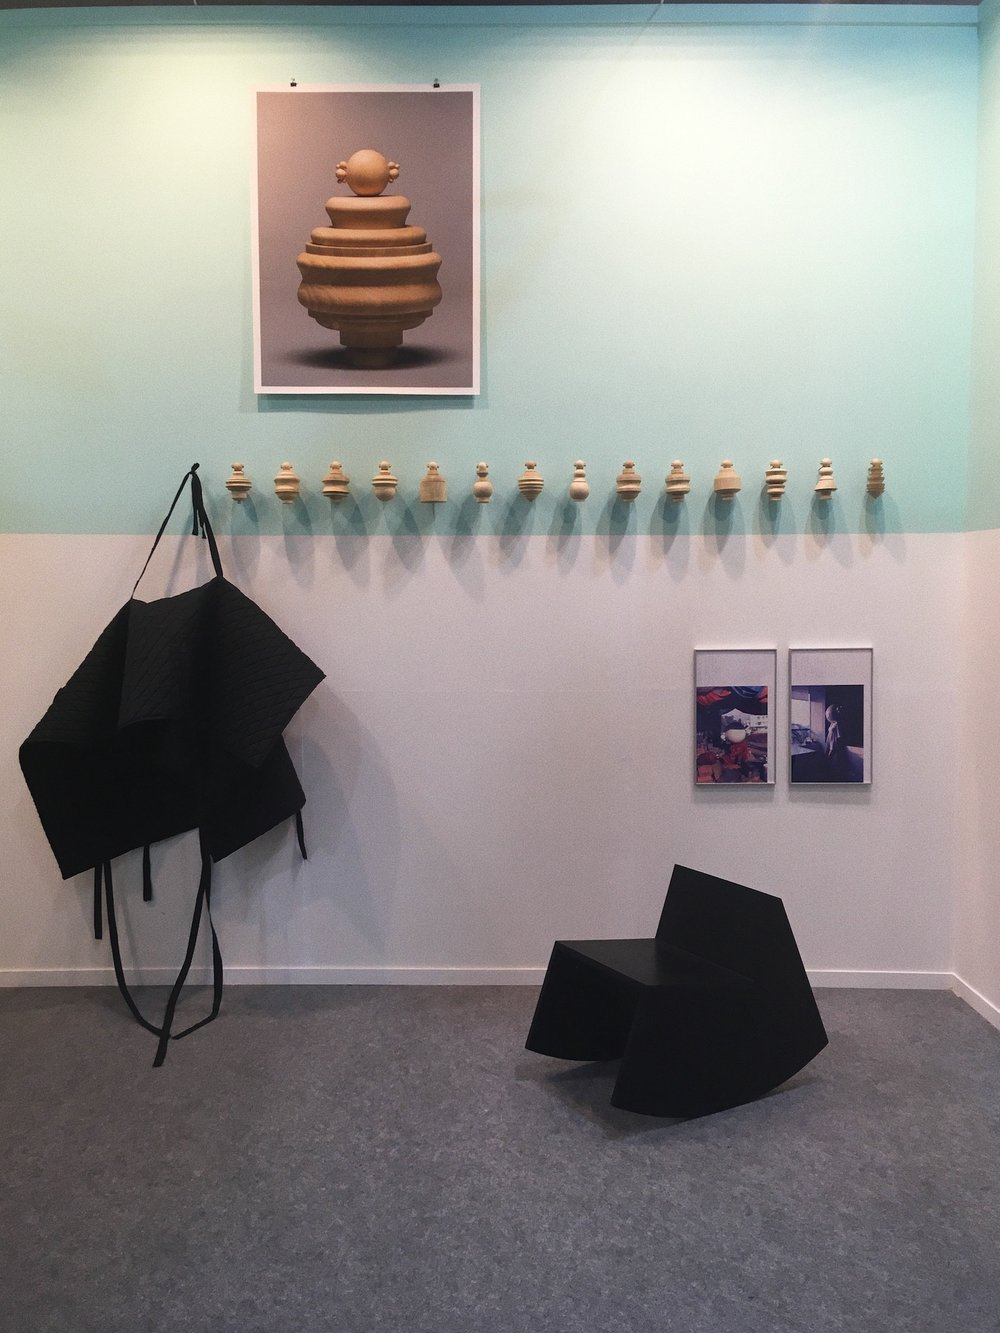 Installation View of  Rehearsing in Acts  (2018) by Princess Pea at India Art Fair 2018